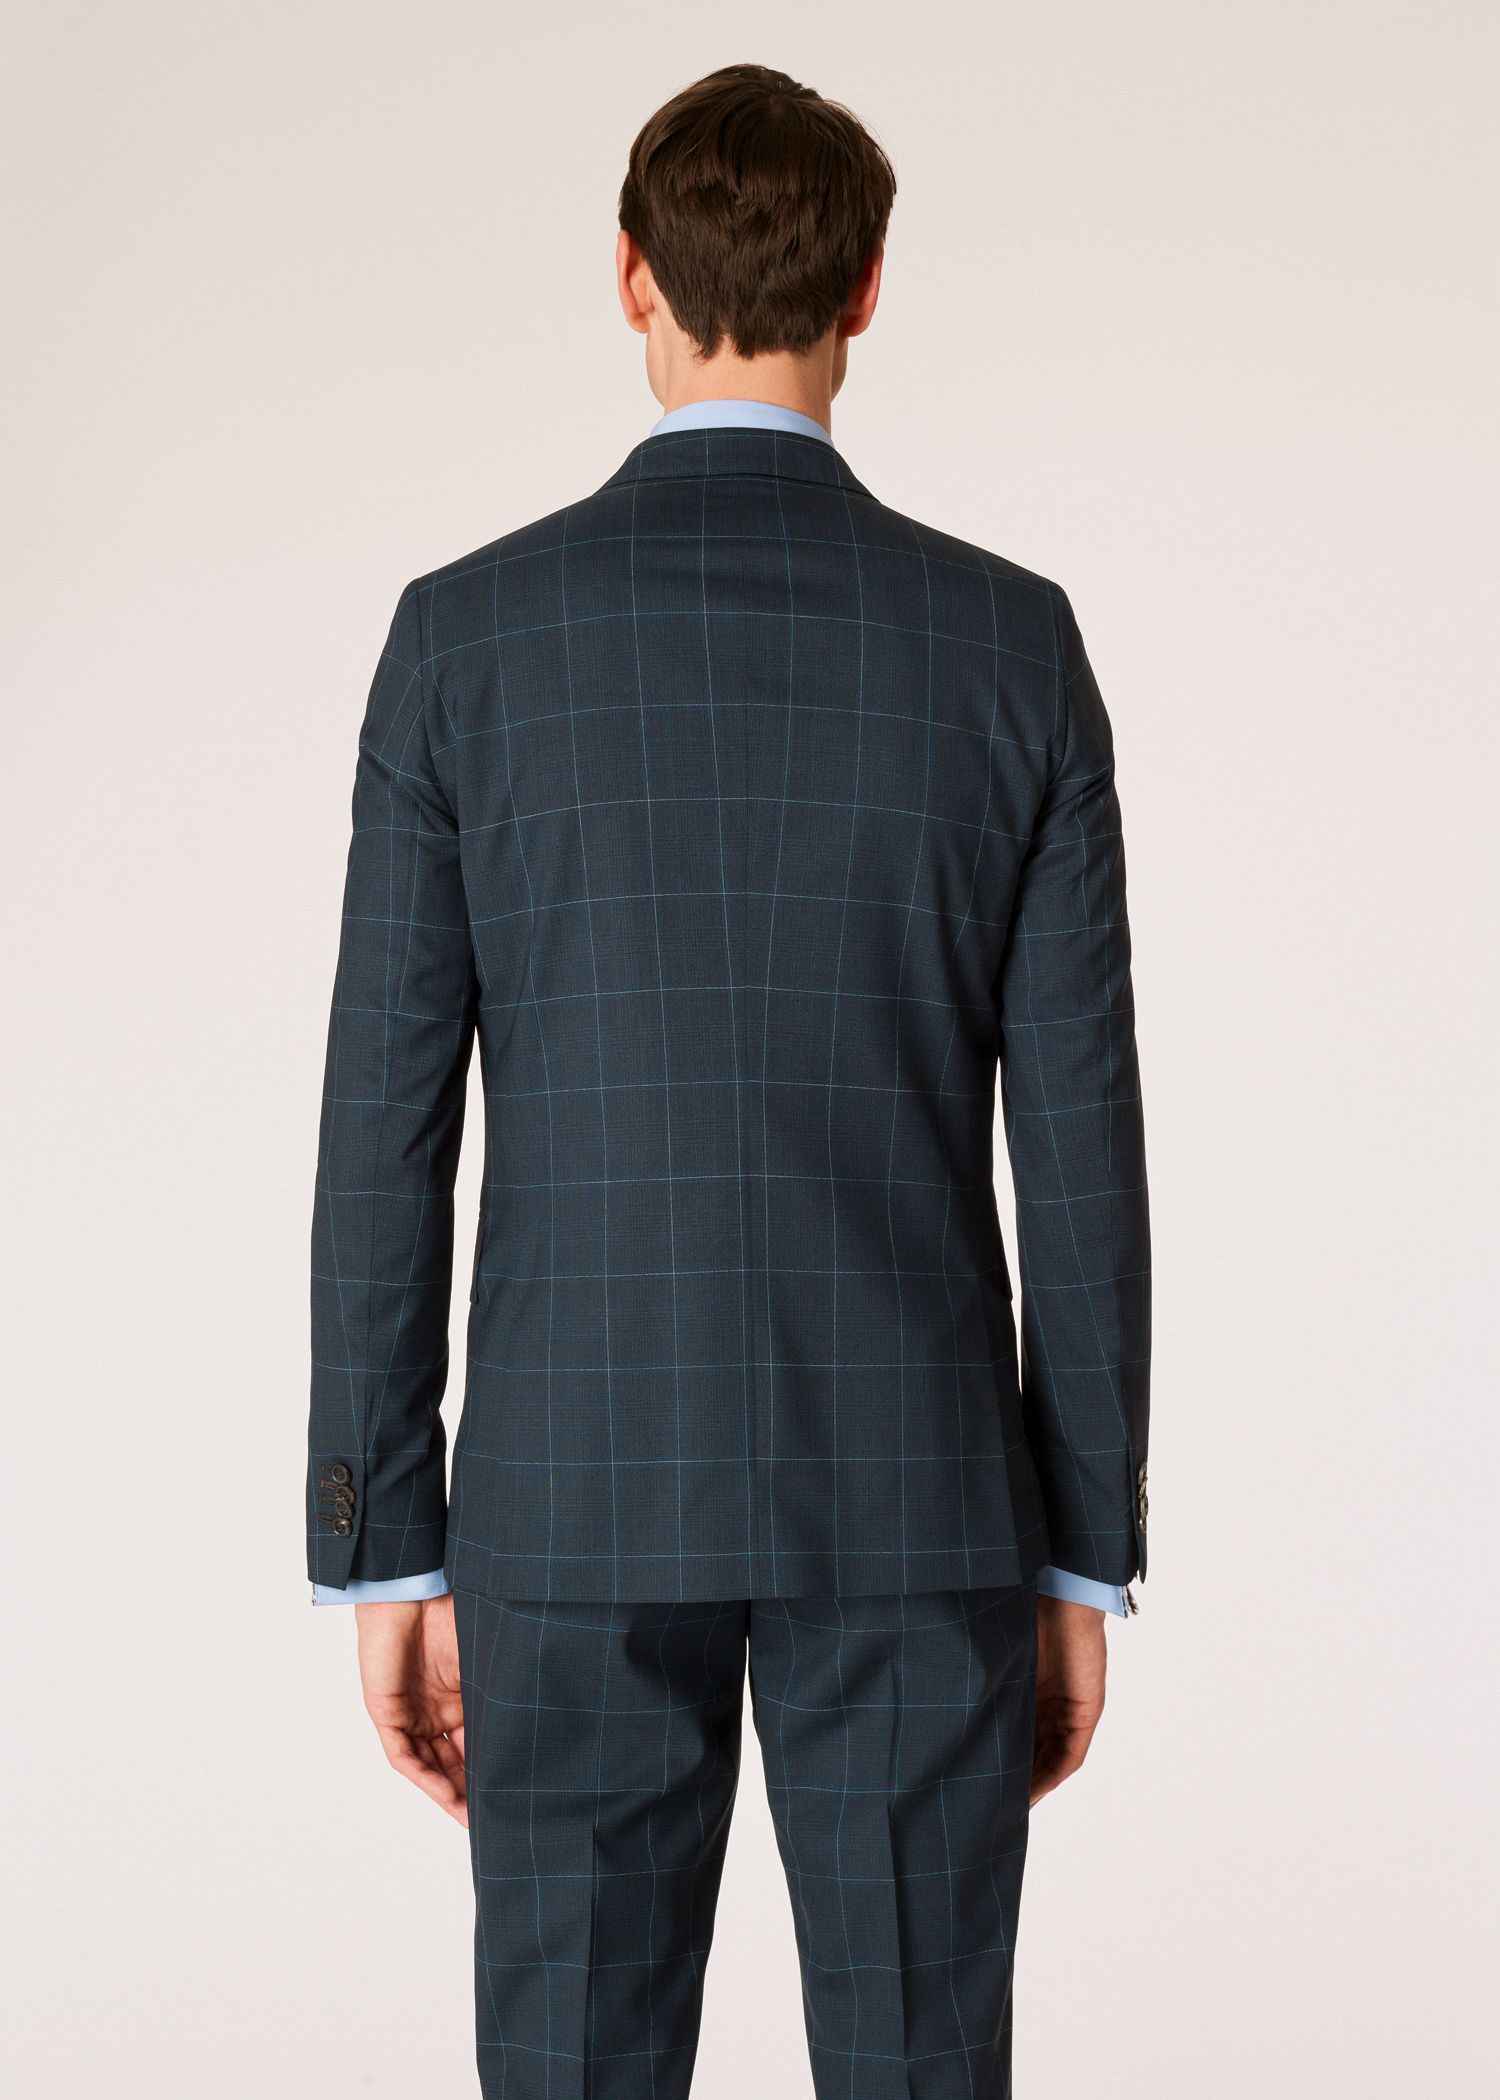 e8715861c46838 Model back blazer view - Men's Slim-Fit Dark Navy Check Wool Suit Paul Smith